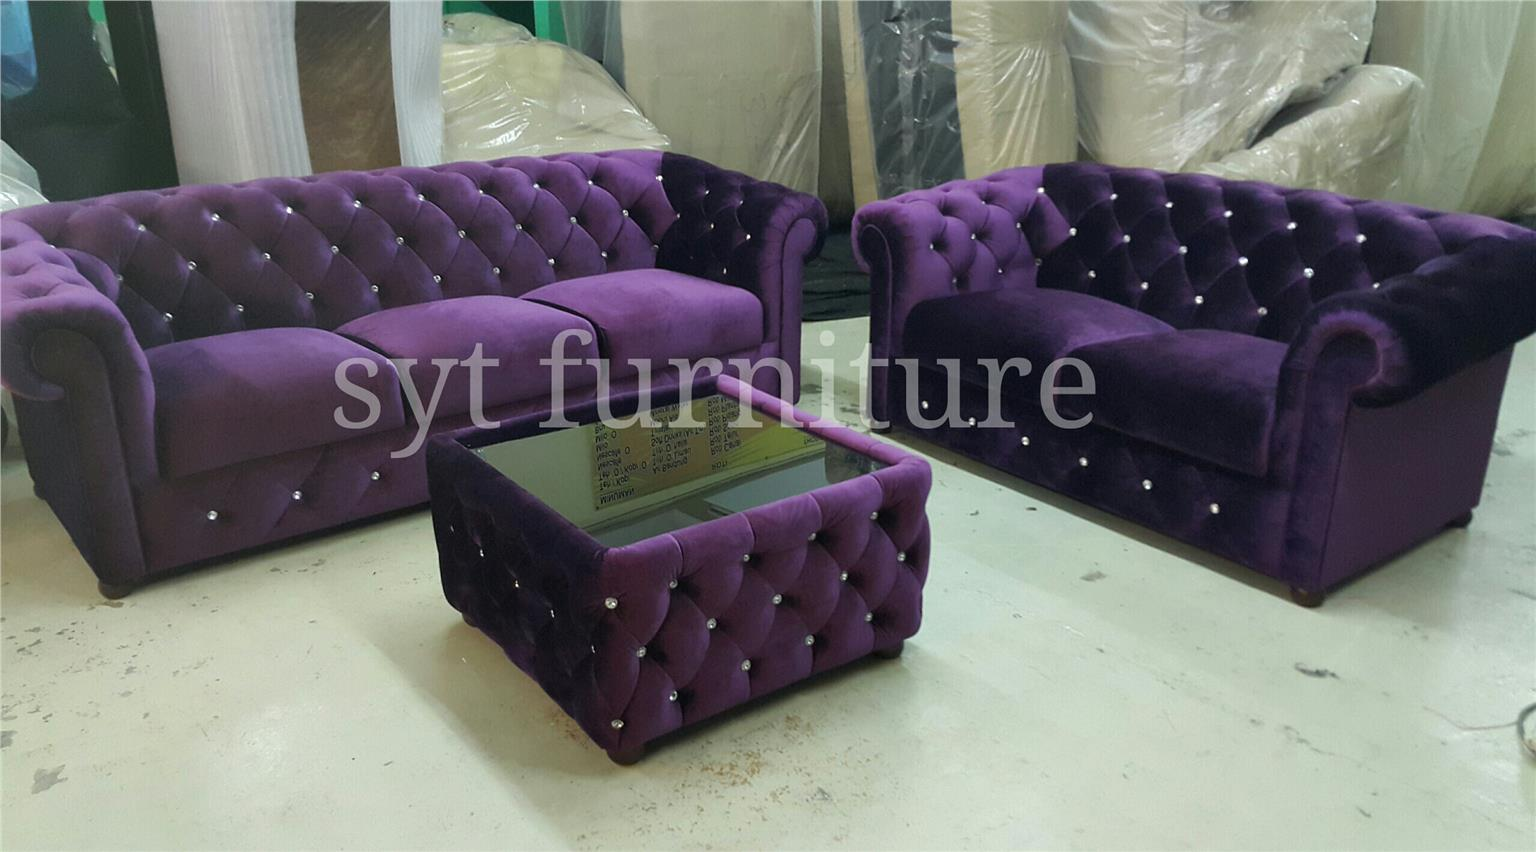 sofa furniture sale malaysia inflatable bed the range chesterfield velvet 2 433 end 11 2016 6 23 pm myt